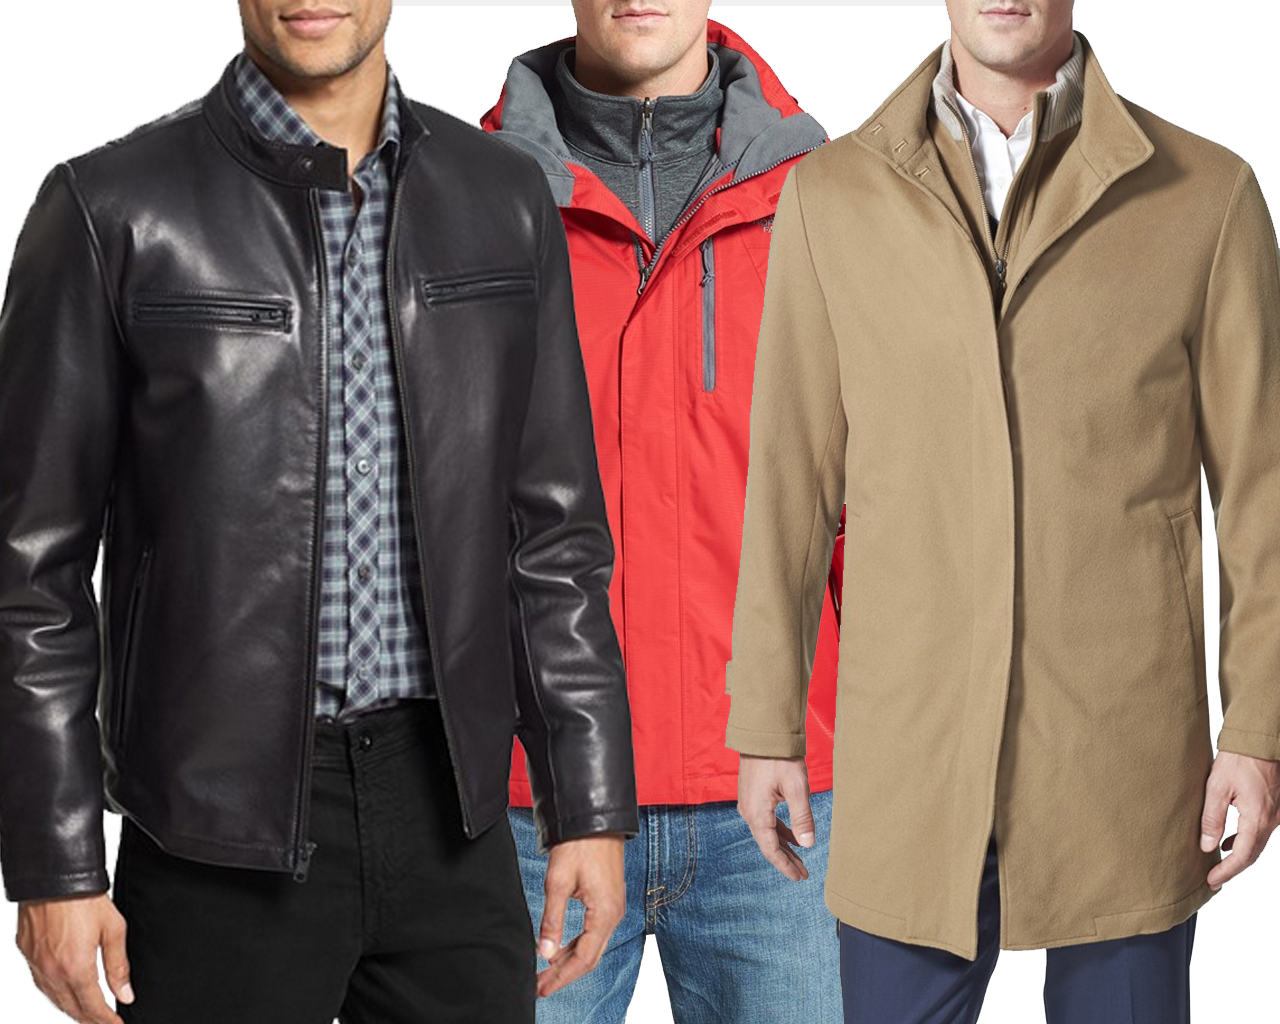 10 essential coat styles for him according to Nordstrom